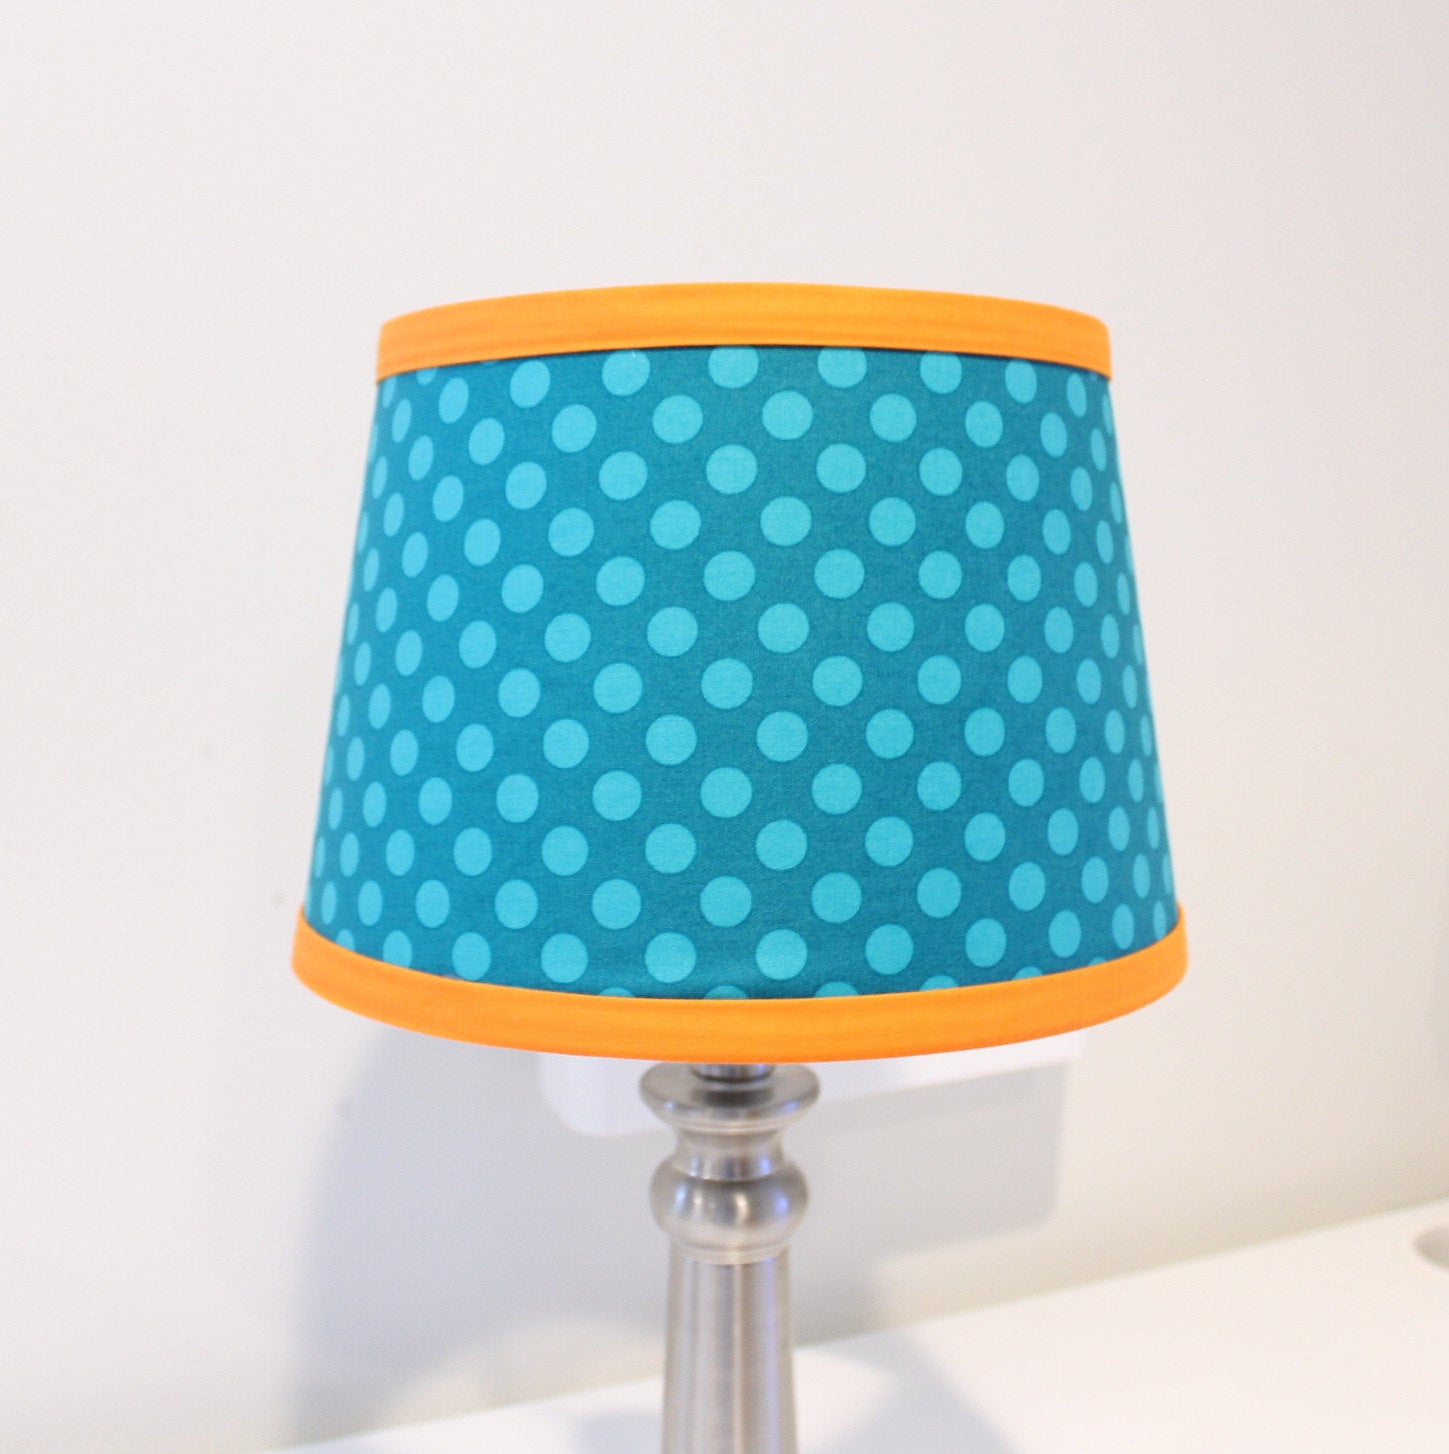 Teal & Orange Polka Dot Lamp shade